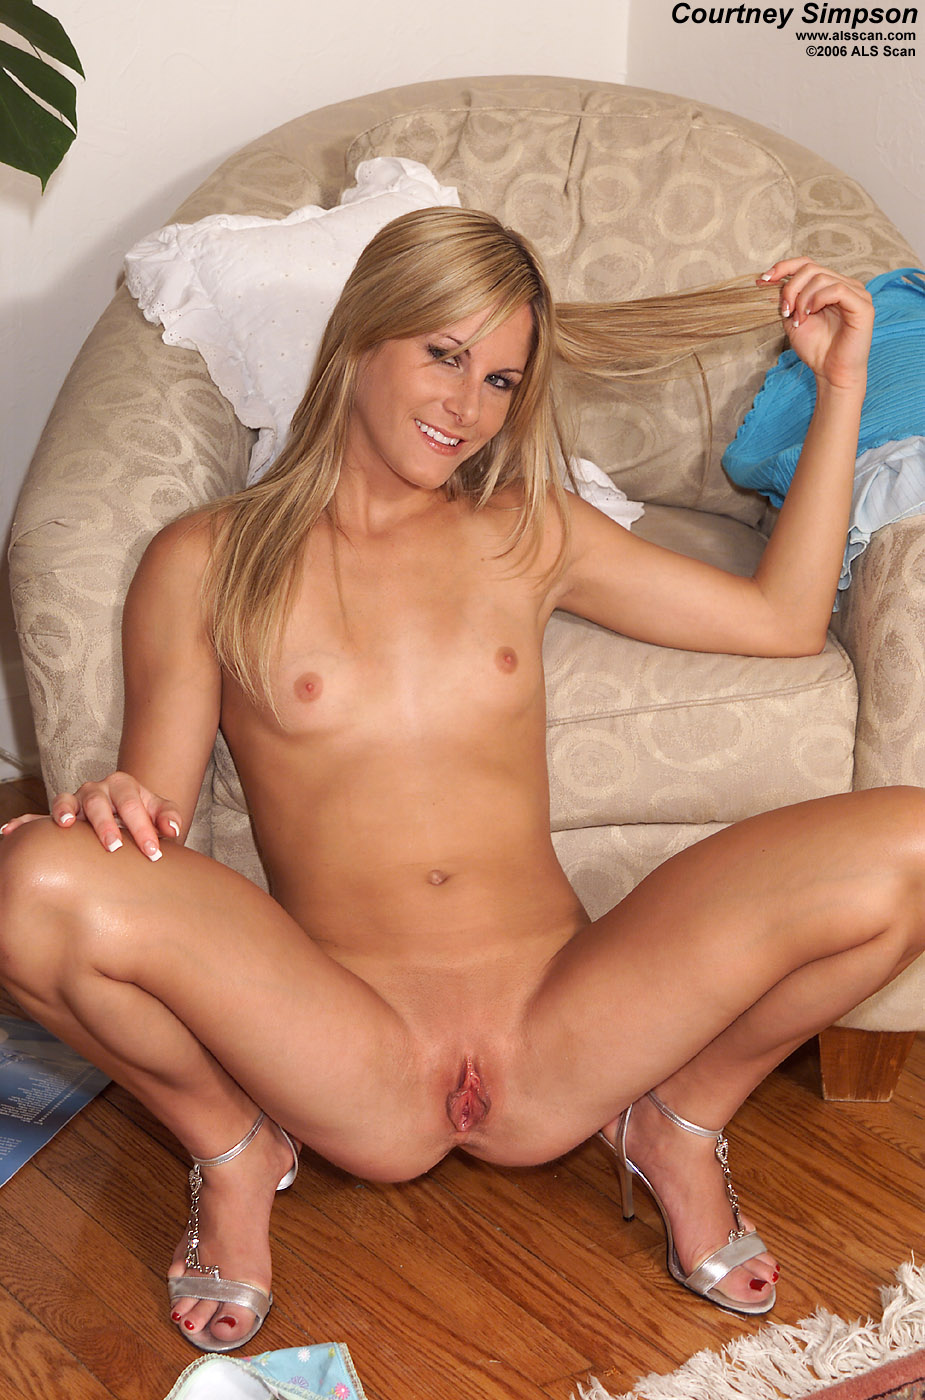 Courtney Simpson Spread Pussy